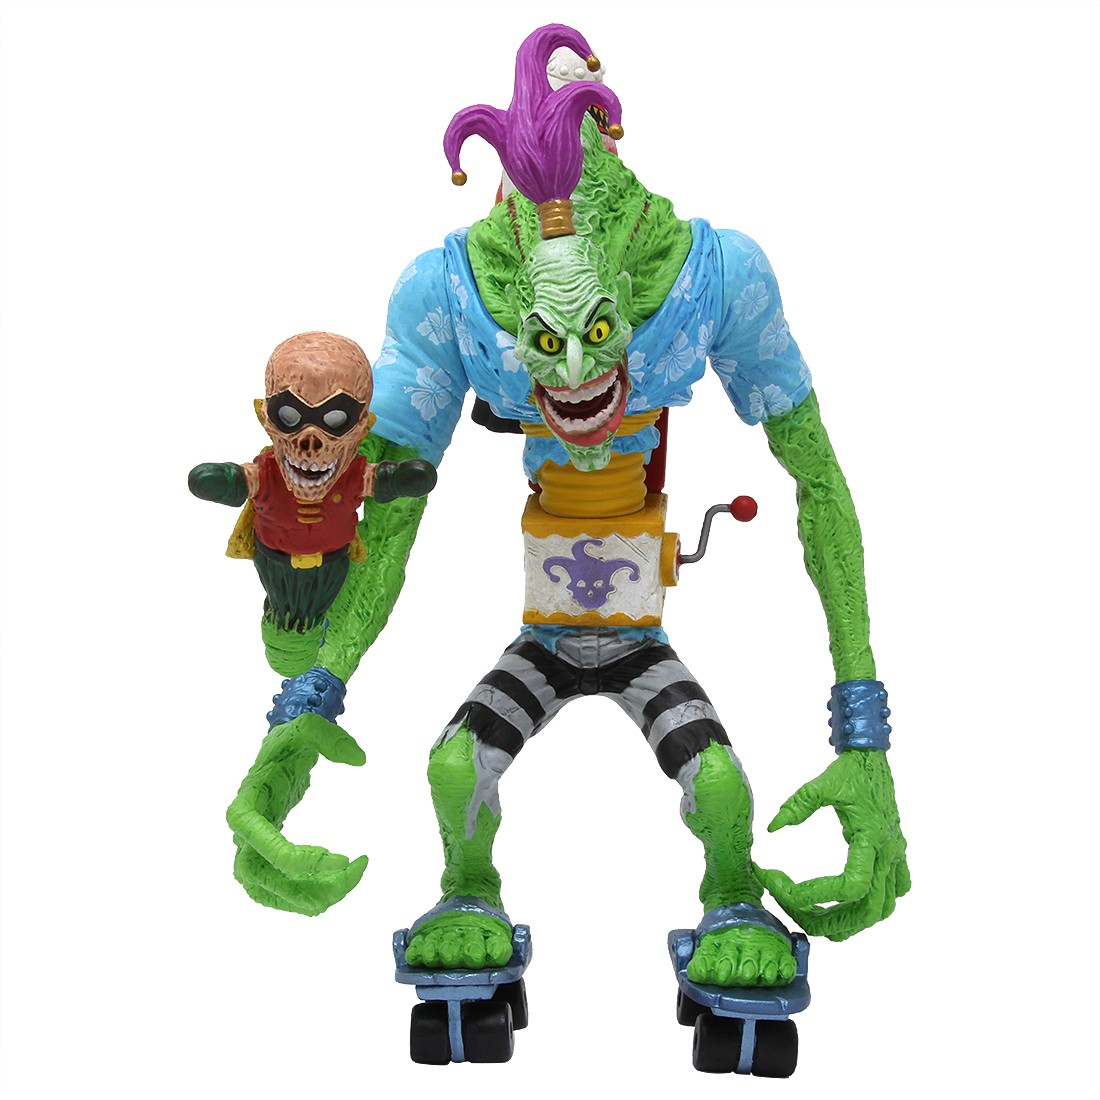 DC Comics DC Artists Alley James Groman Joker Figure (green)